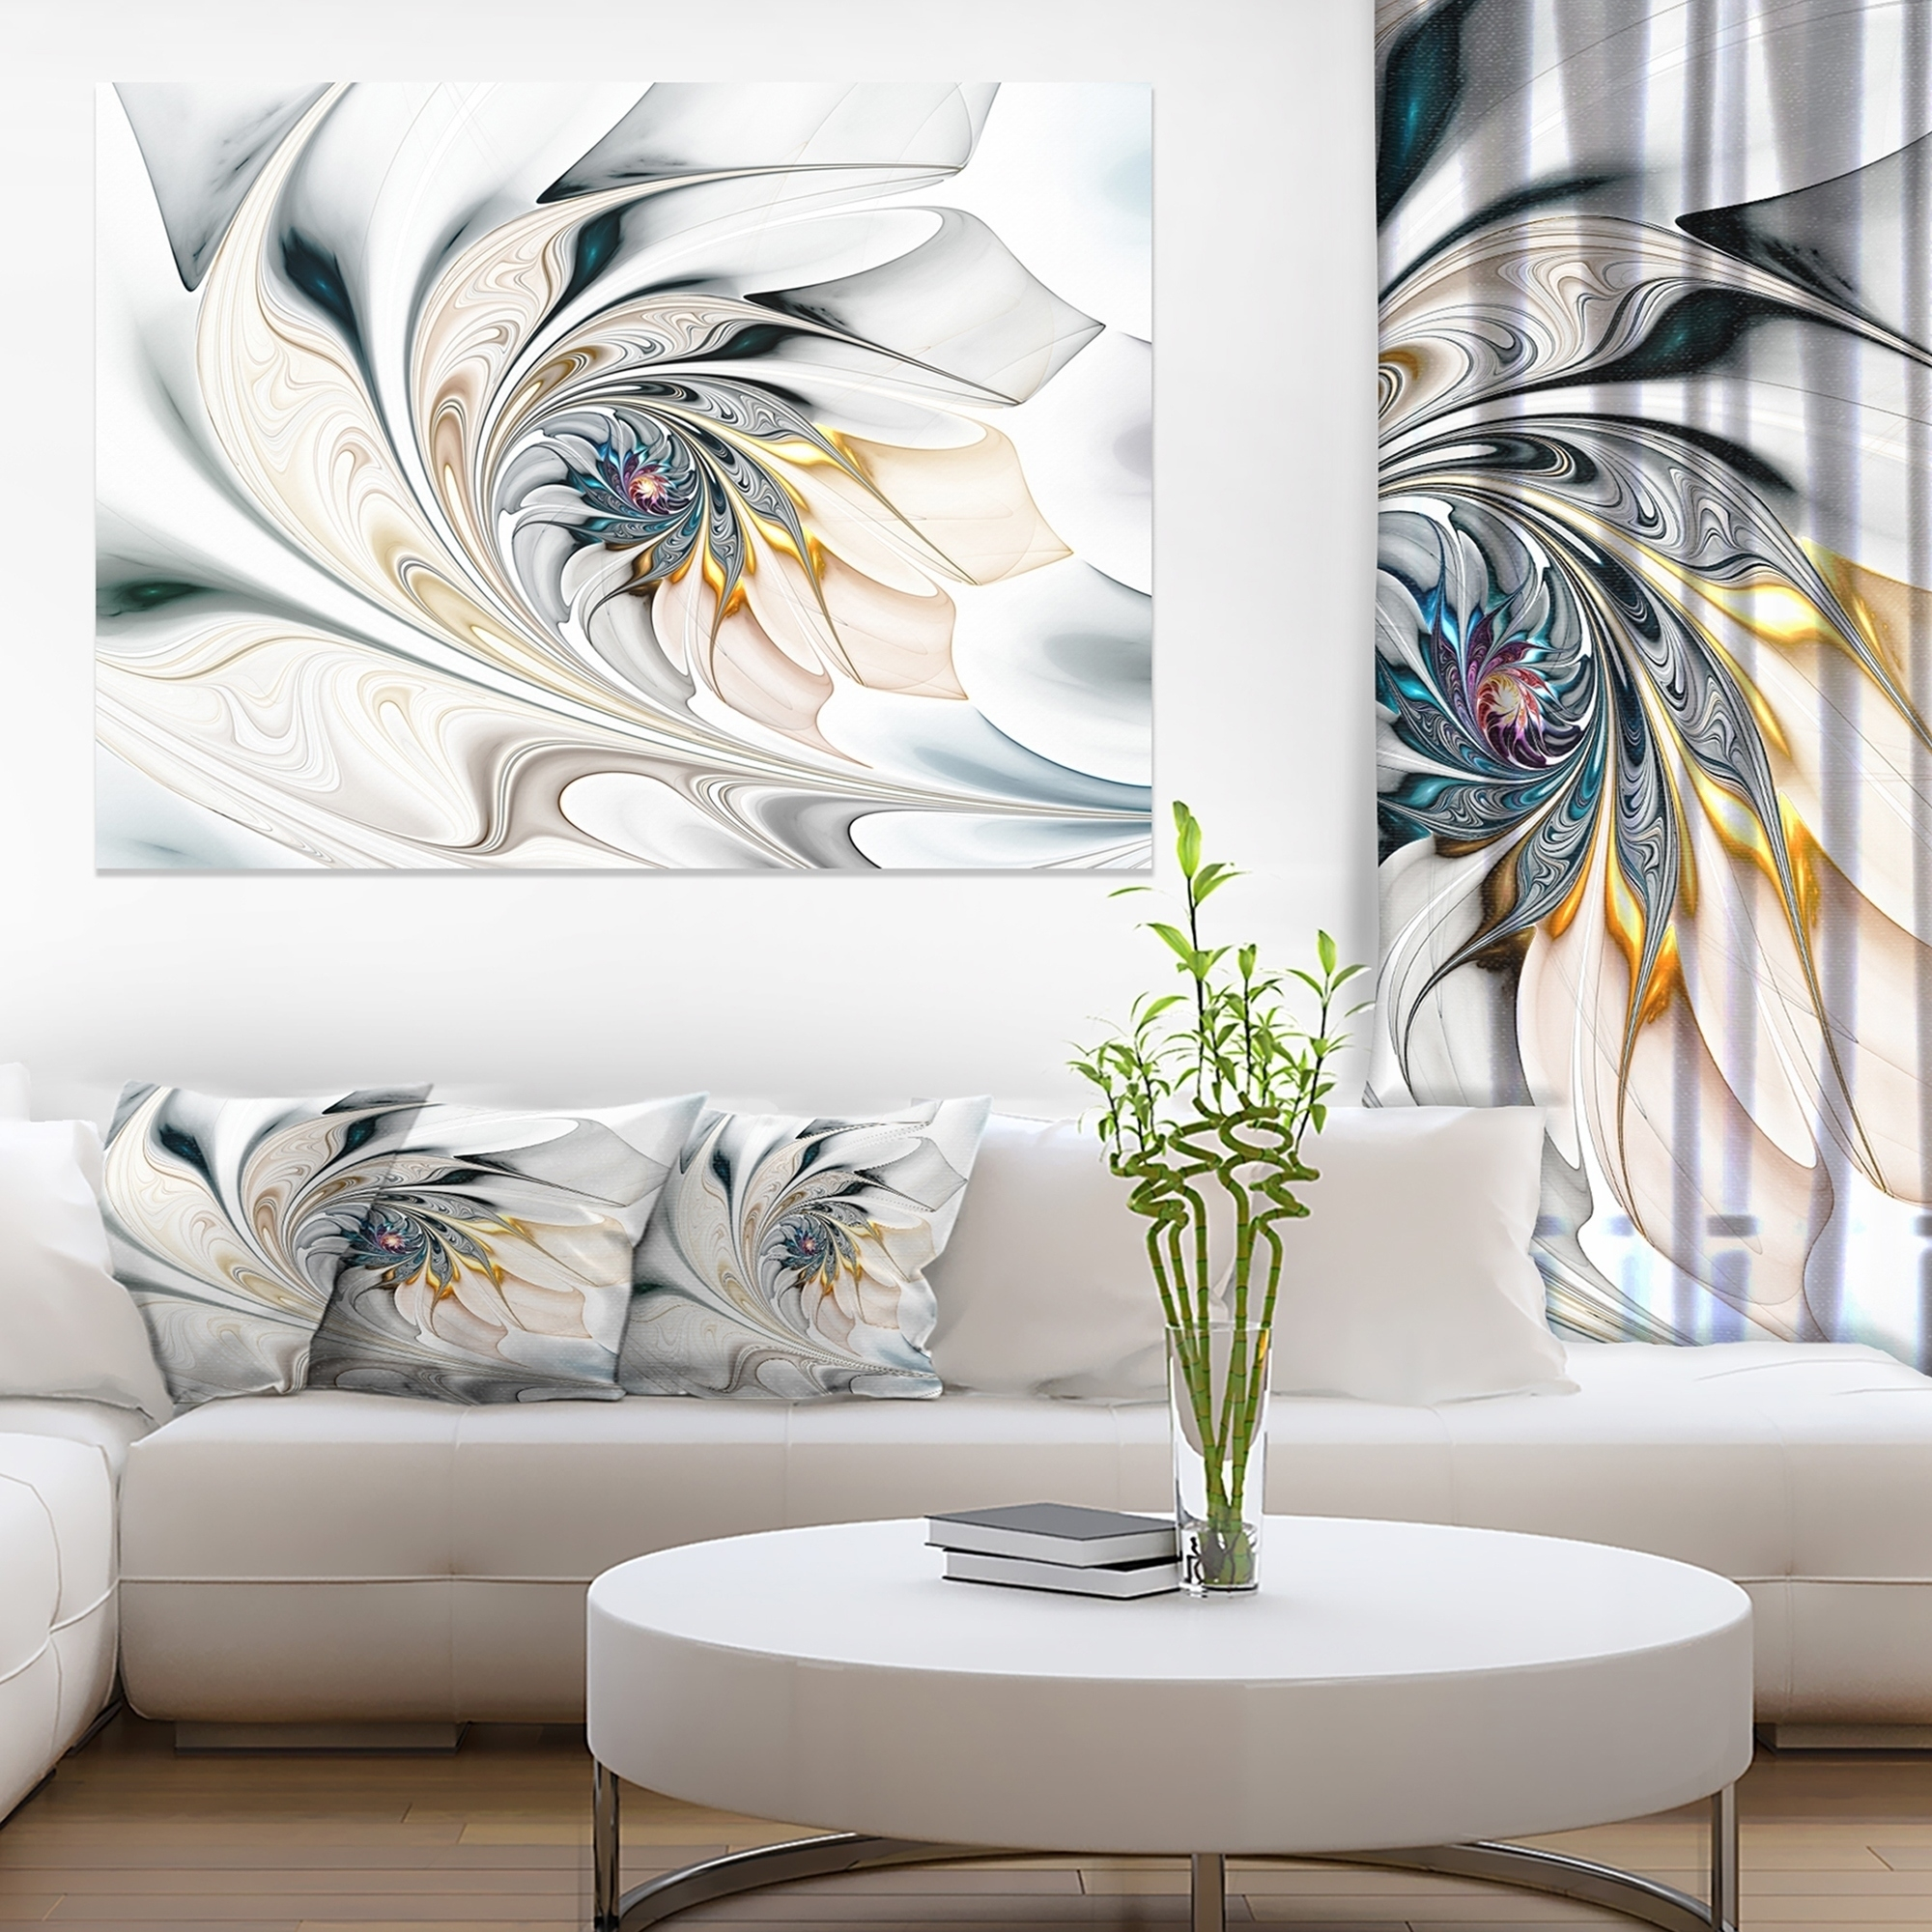 Shop White Stained Glass Floral Art – Large Floral Wall Art Canvas For Recent Stained Glass Wall Art (Gallery 15 of 20)